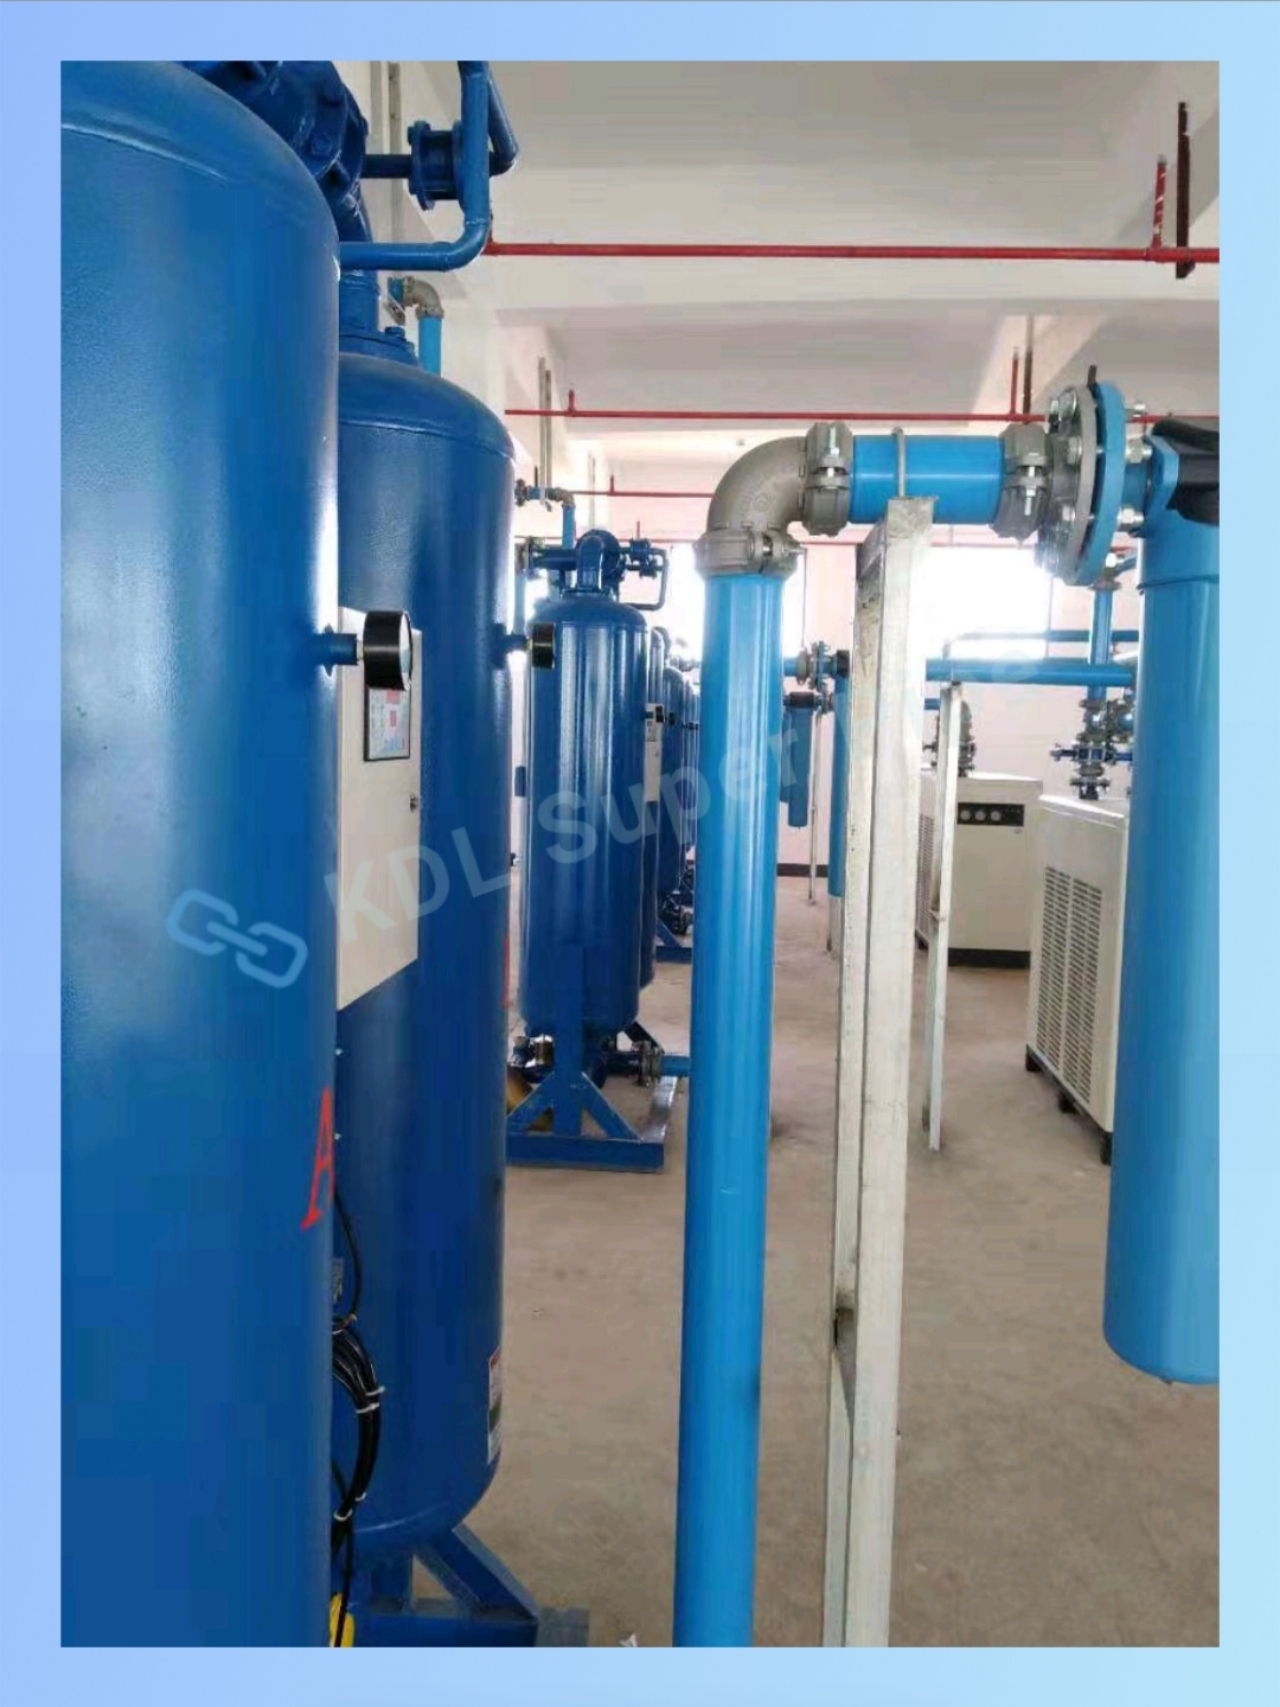 Air compressor pipe for compressed air aluminium piping system